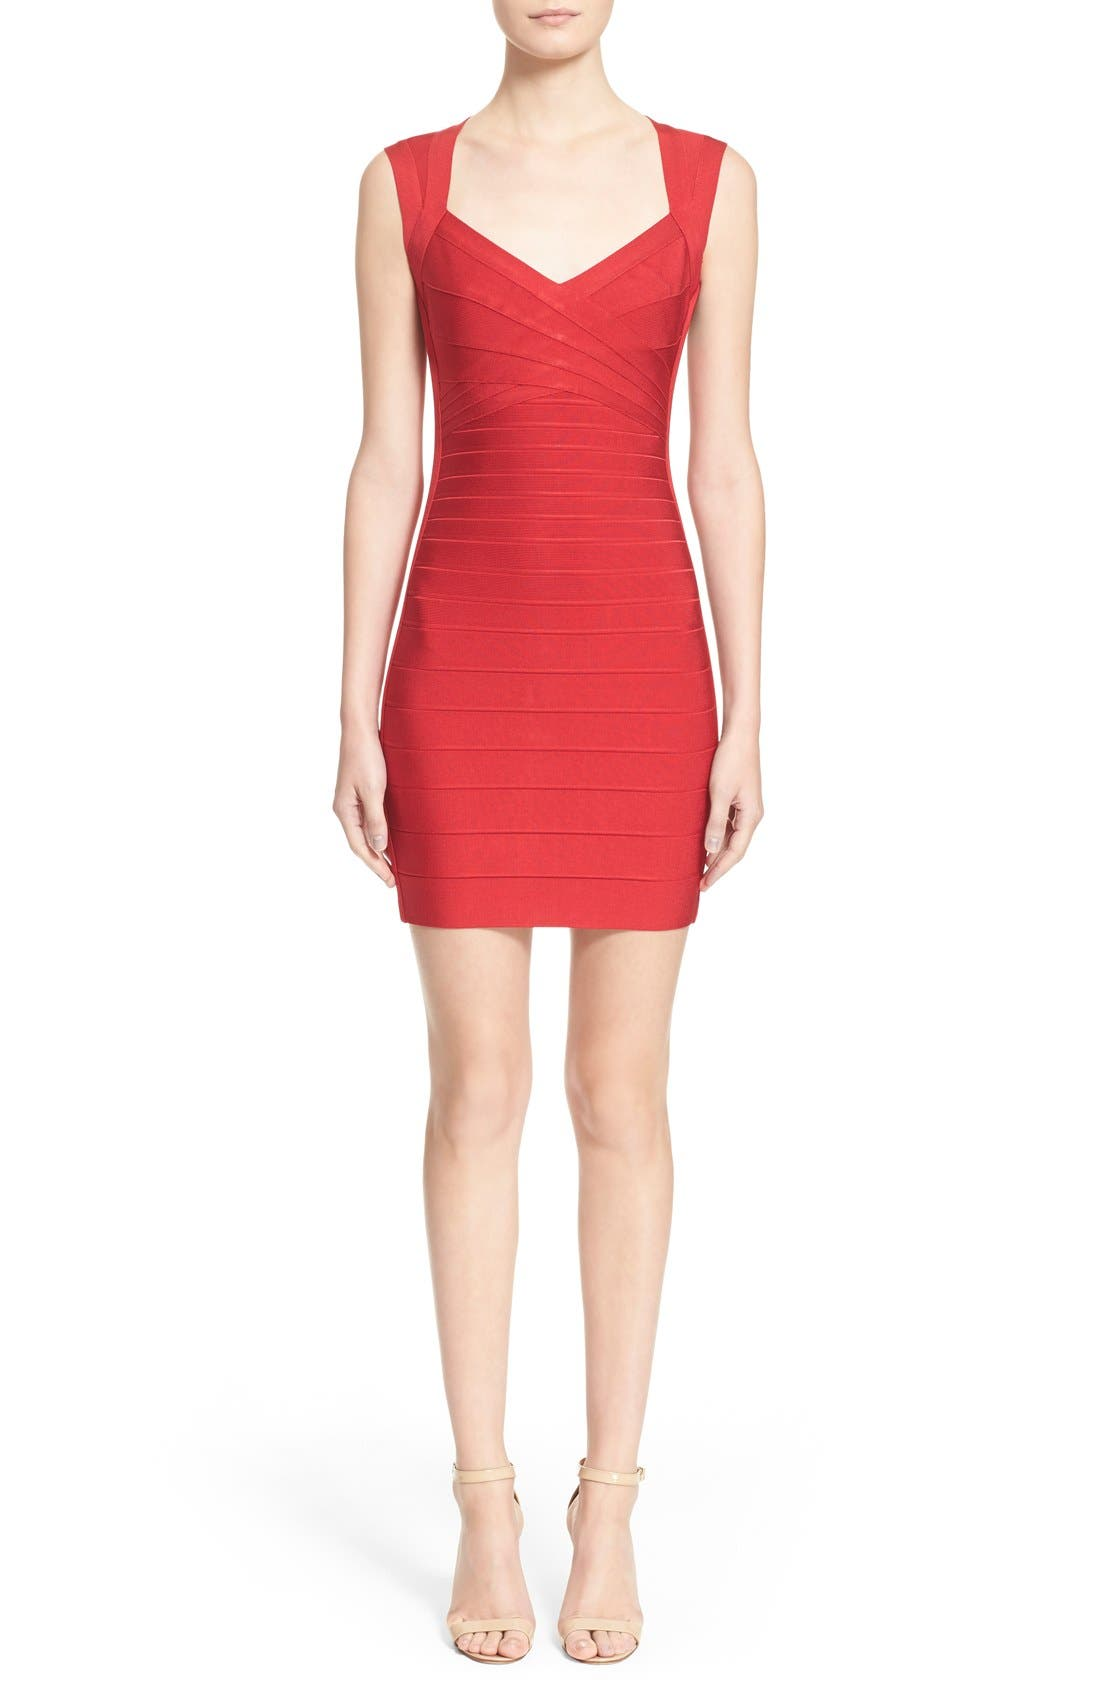 HERVE LEGER Open Back Bandage Dress